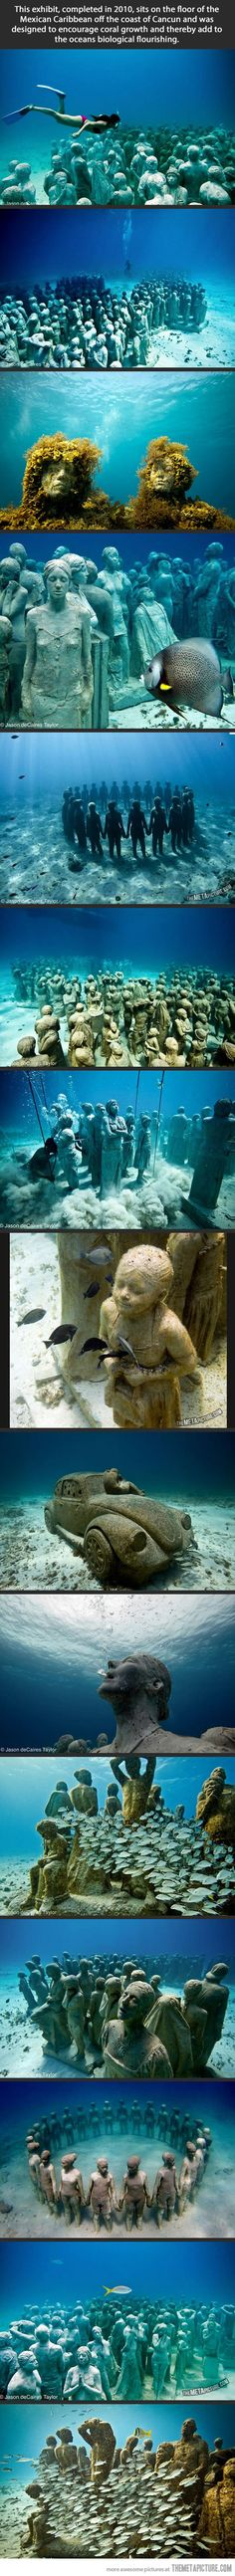 Amazing underwater museum, used like a reef for the wildlife.